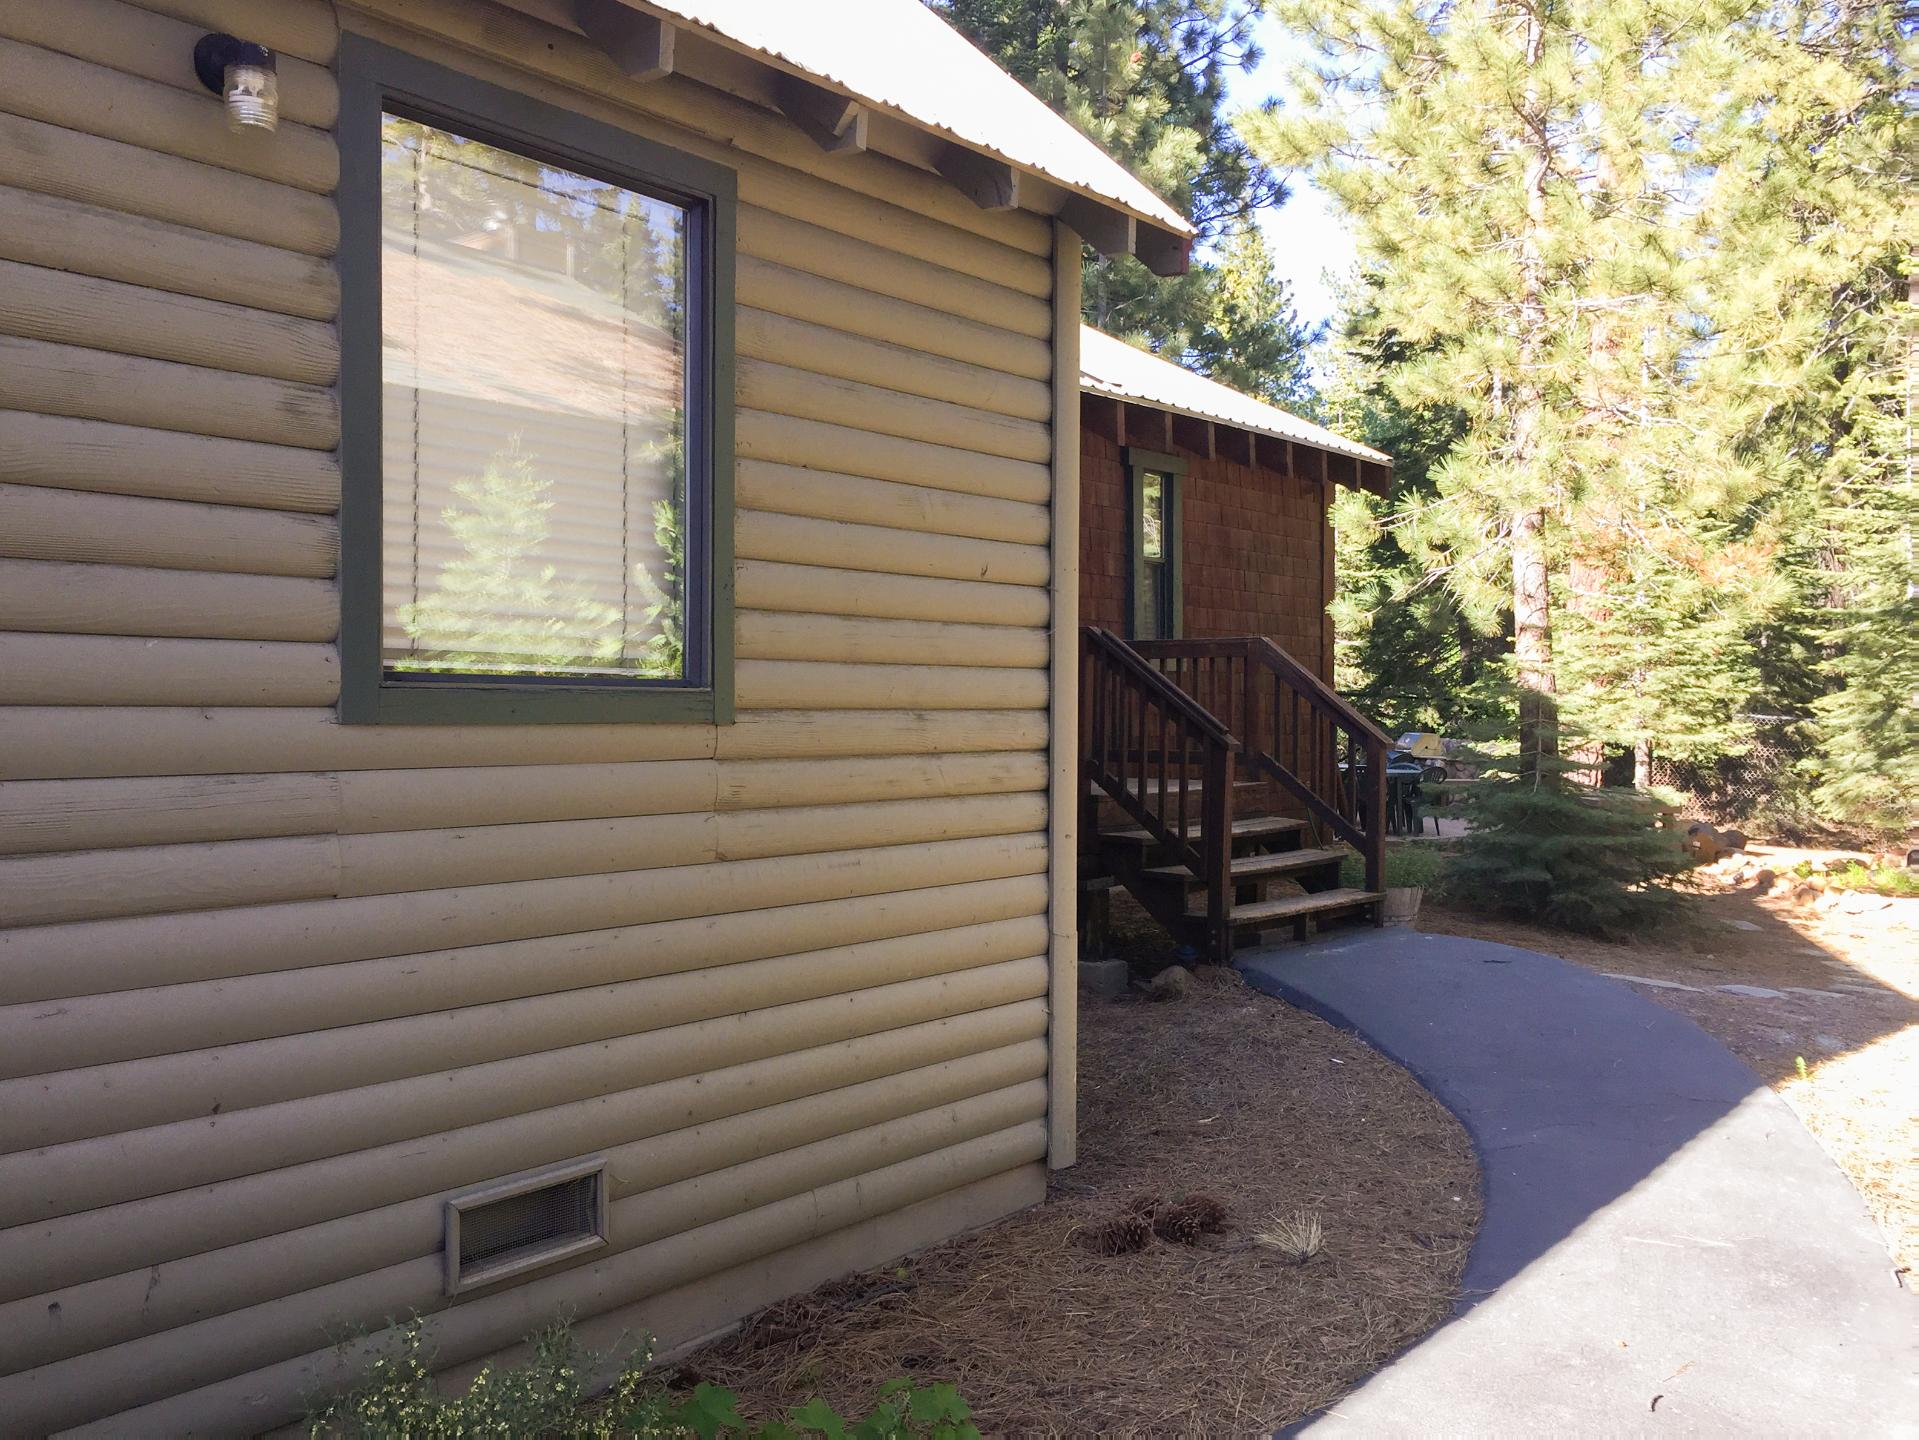 tahoe ca for cabin south lake campgrounds sale cheap rentals with rent log in cabins